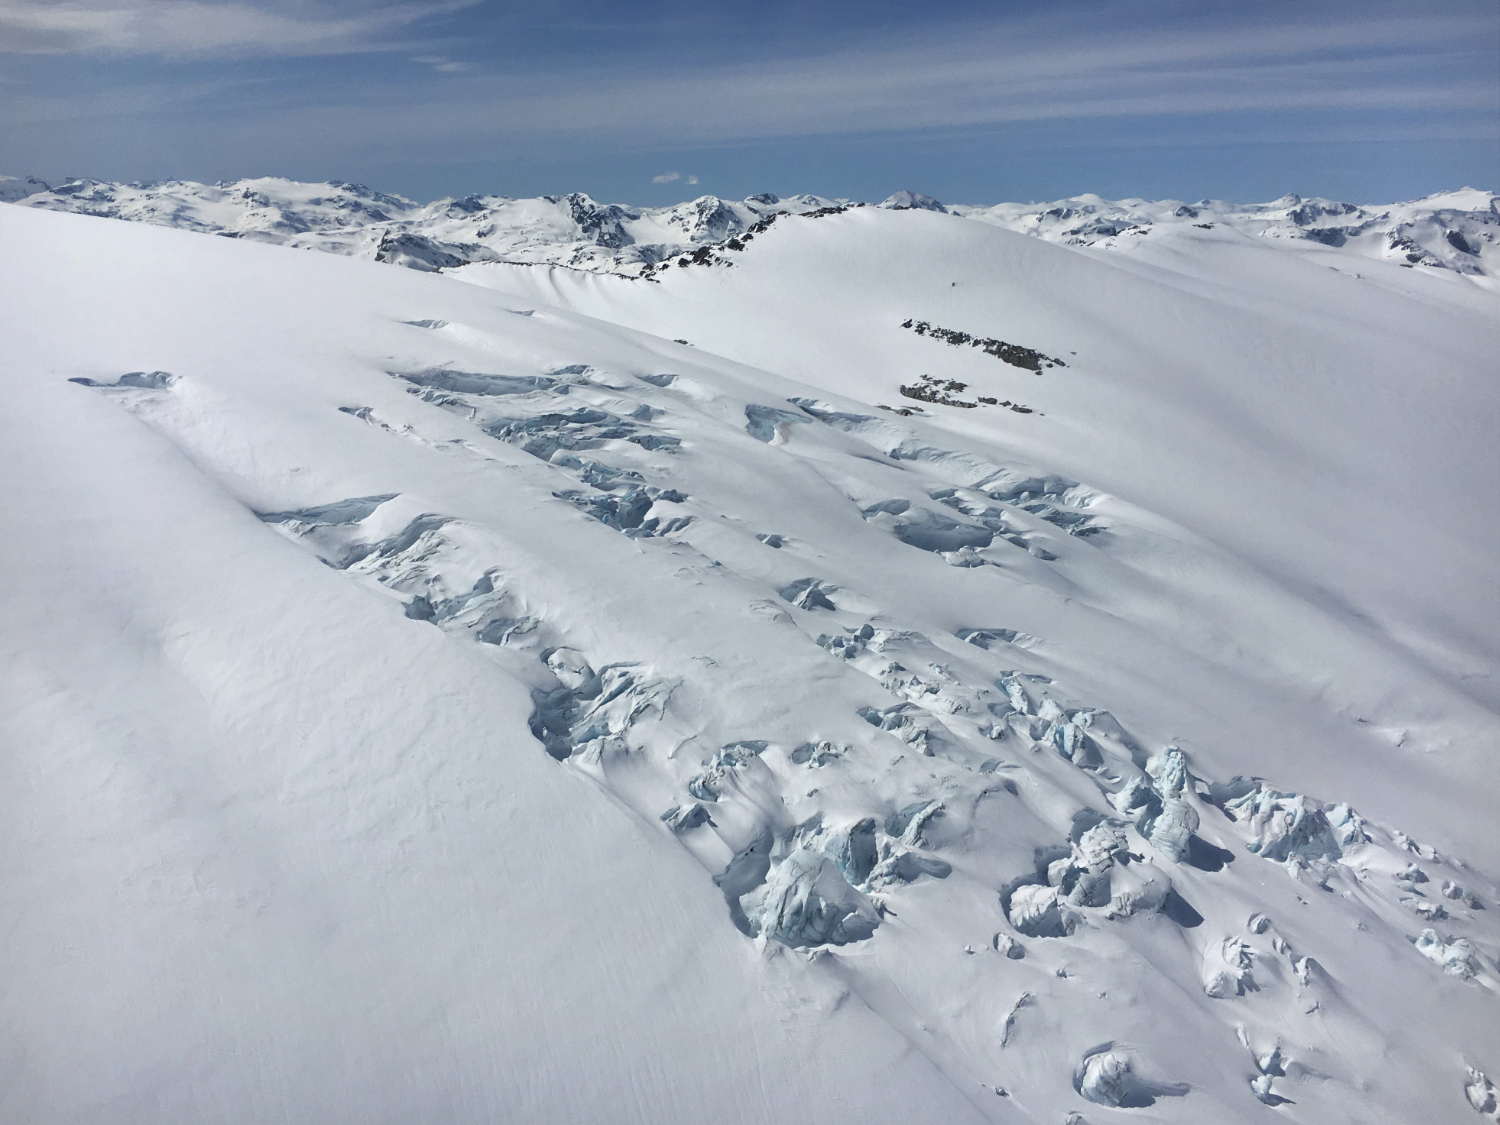 snow sliding formations on mountain side